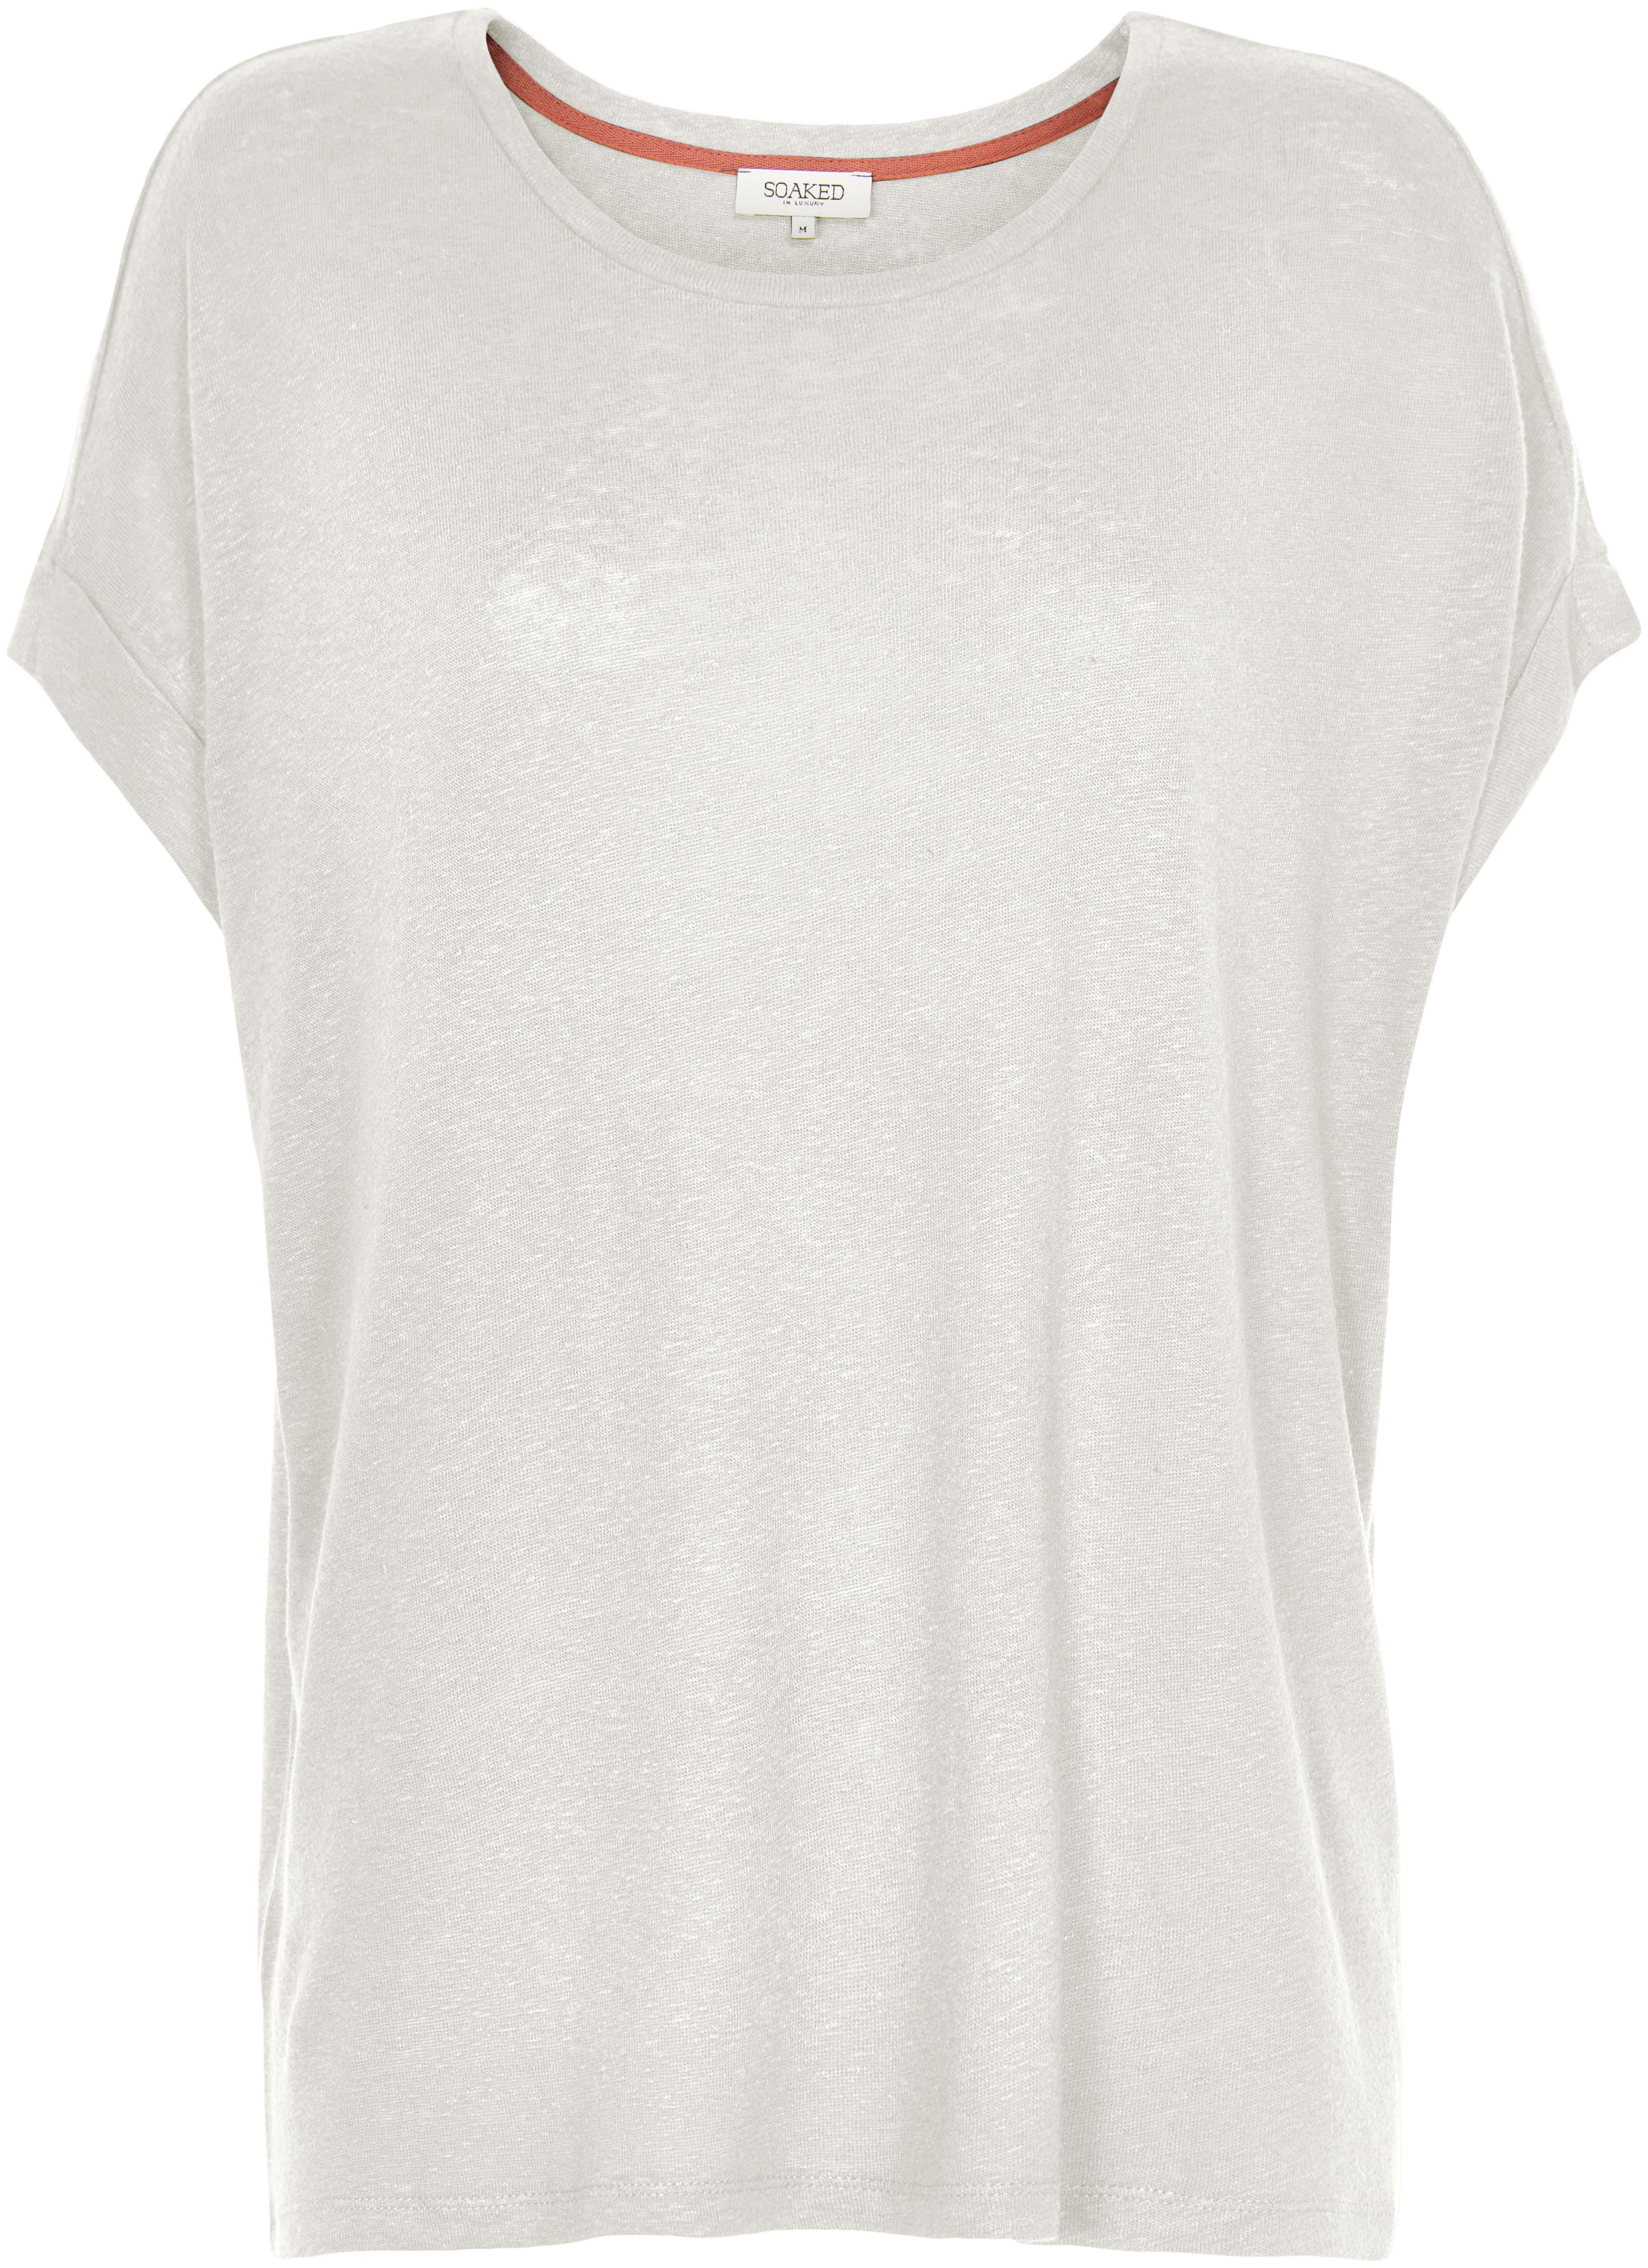 Soaked in Luxury Soaked in Luxury Oversized T-Shirt, White